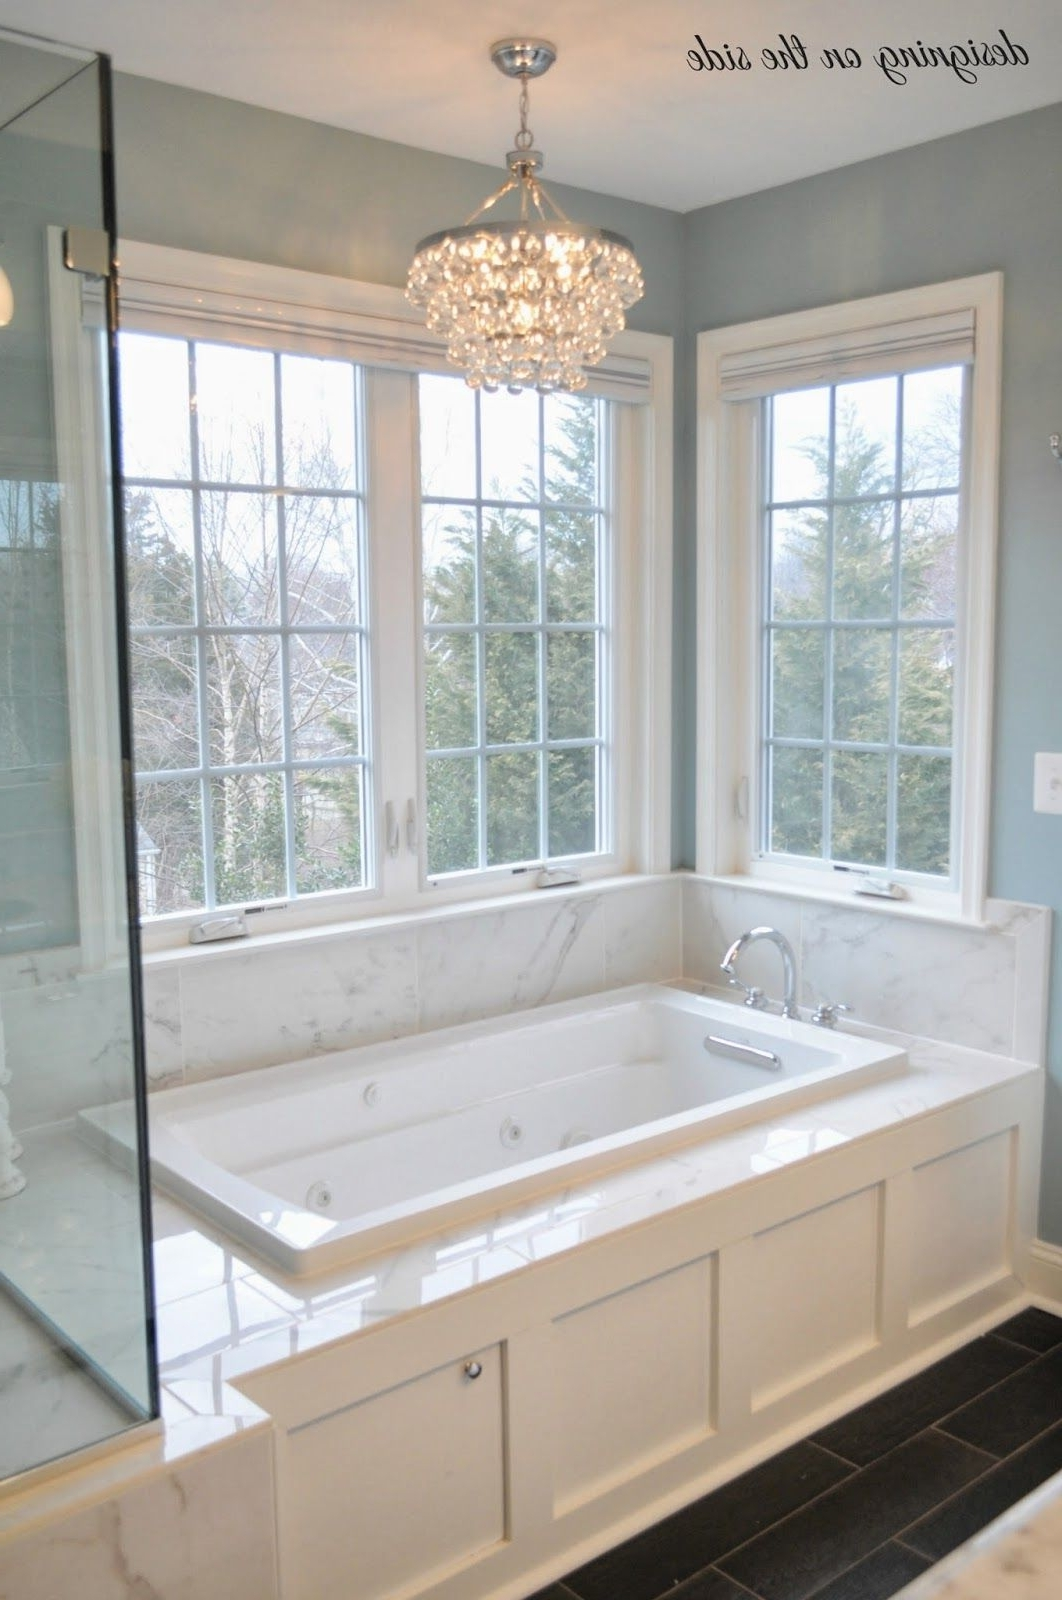 Master Bath, Marble Tile, Sw Rain, Crystal Chandelier, Tile That Within Widely Used Crystal Chandelier Bathroom Lighting (View 4 of 20)